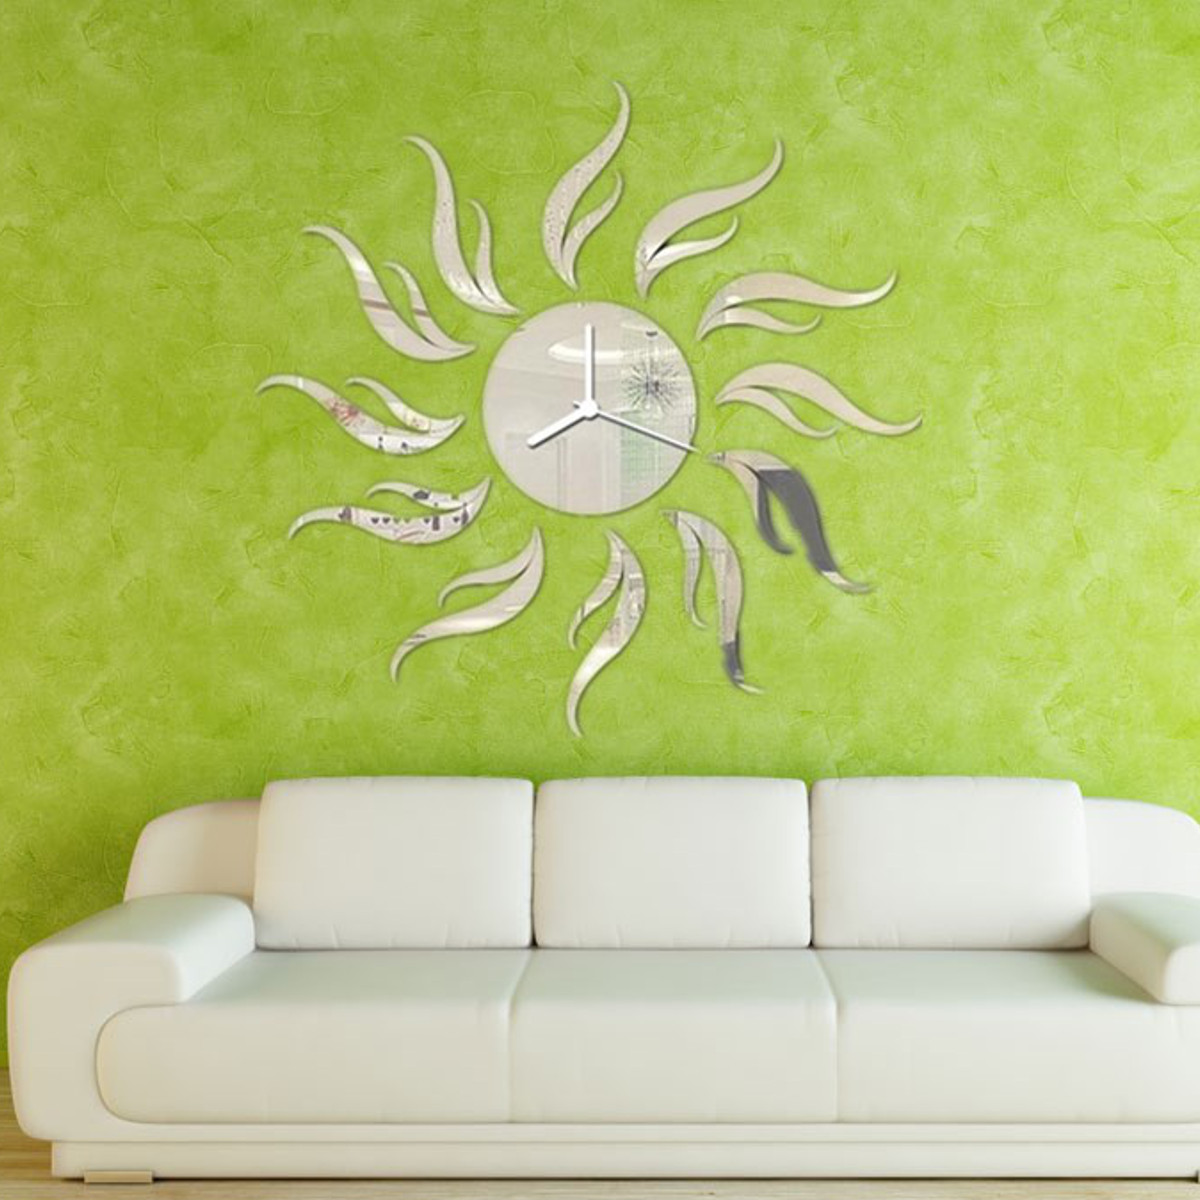 Modern Diy Frameless Acrylic Mirror Wall Clocks Sticker